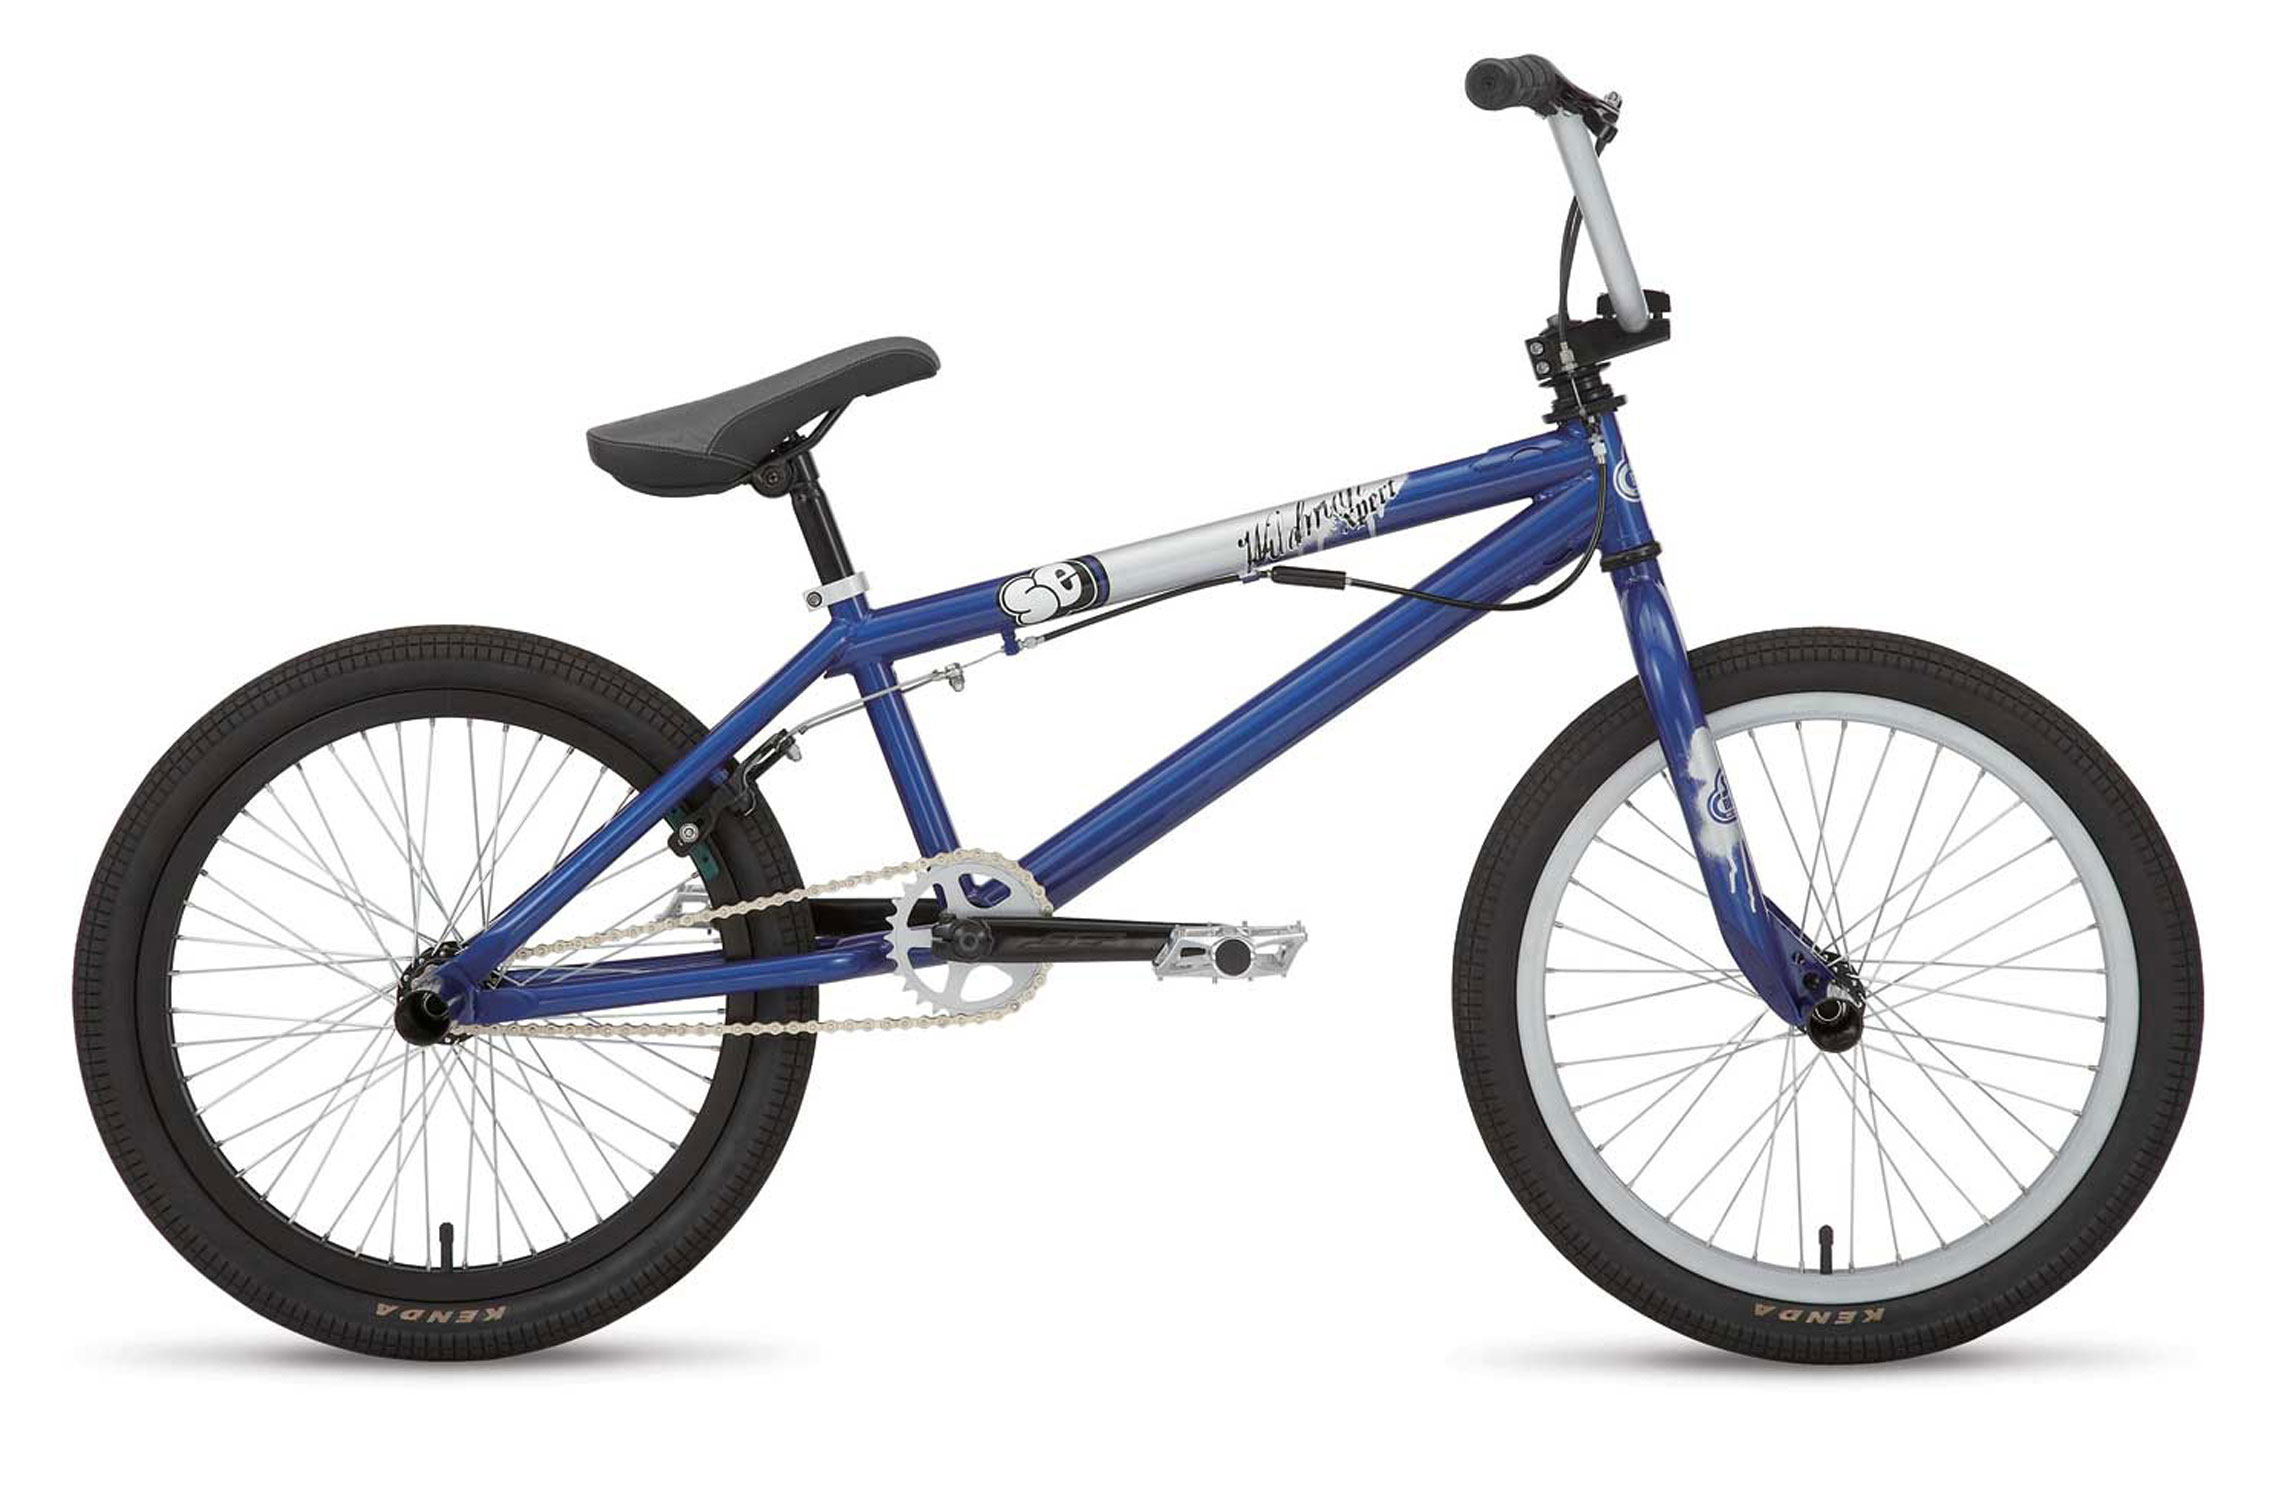 "BMX Key Features of the SE Wildman X-Pert Street Bike: Frame: 100% CR-MO, Mid BB, Removable Rotor Tabs Fork: 100% CR-MO Landing Gear, 14mm Dropouts Headset: Tange 1-1/8"" Threadless Handlebars: CR-MO, Wild Bar, 25.5"" X 7"" Stem: SE Top Load 1-1/8"" Alloy Grips: SE Bubble Jump Grip Brake Lever: Tektro XL320 2 Finger Alloy Brake(s): Tektro FX-340 U Brake, Linear Pull, Soft Compound Shoes Seat: SE Slim Seat w/Custom Cover, 8mm Rails Seat Post: SE Straight Post 25.4 Crankset: SE 3-pc Cr-Mo, 175mm, Mid Sealed Bearing, 28T Alloy Chain: KMC Z410 Pedal: Wellgo Alloy Platform, CR-MO Axle Rim: Alex G-22 Aluminum, 36H F, 48H R, Stainless 14g Spokes Front Hub: SE Alloy, 36H, 14mm Axle Rear Hub: SE Alloy, 48H, 14mm, 10T Driver Tires: Kenda K-1040, 2.1 Front & Rear Extras: SST Oryg Rotor, 2 Pegs, SE Plastic Grip End Caps - $257.95"